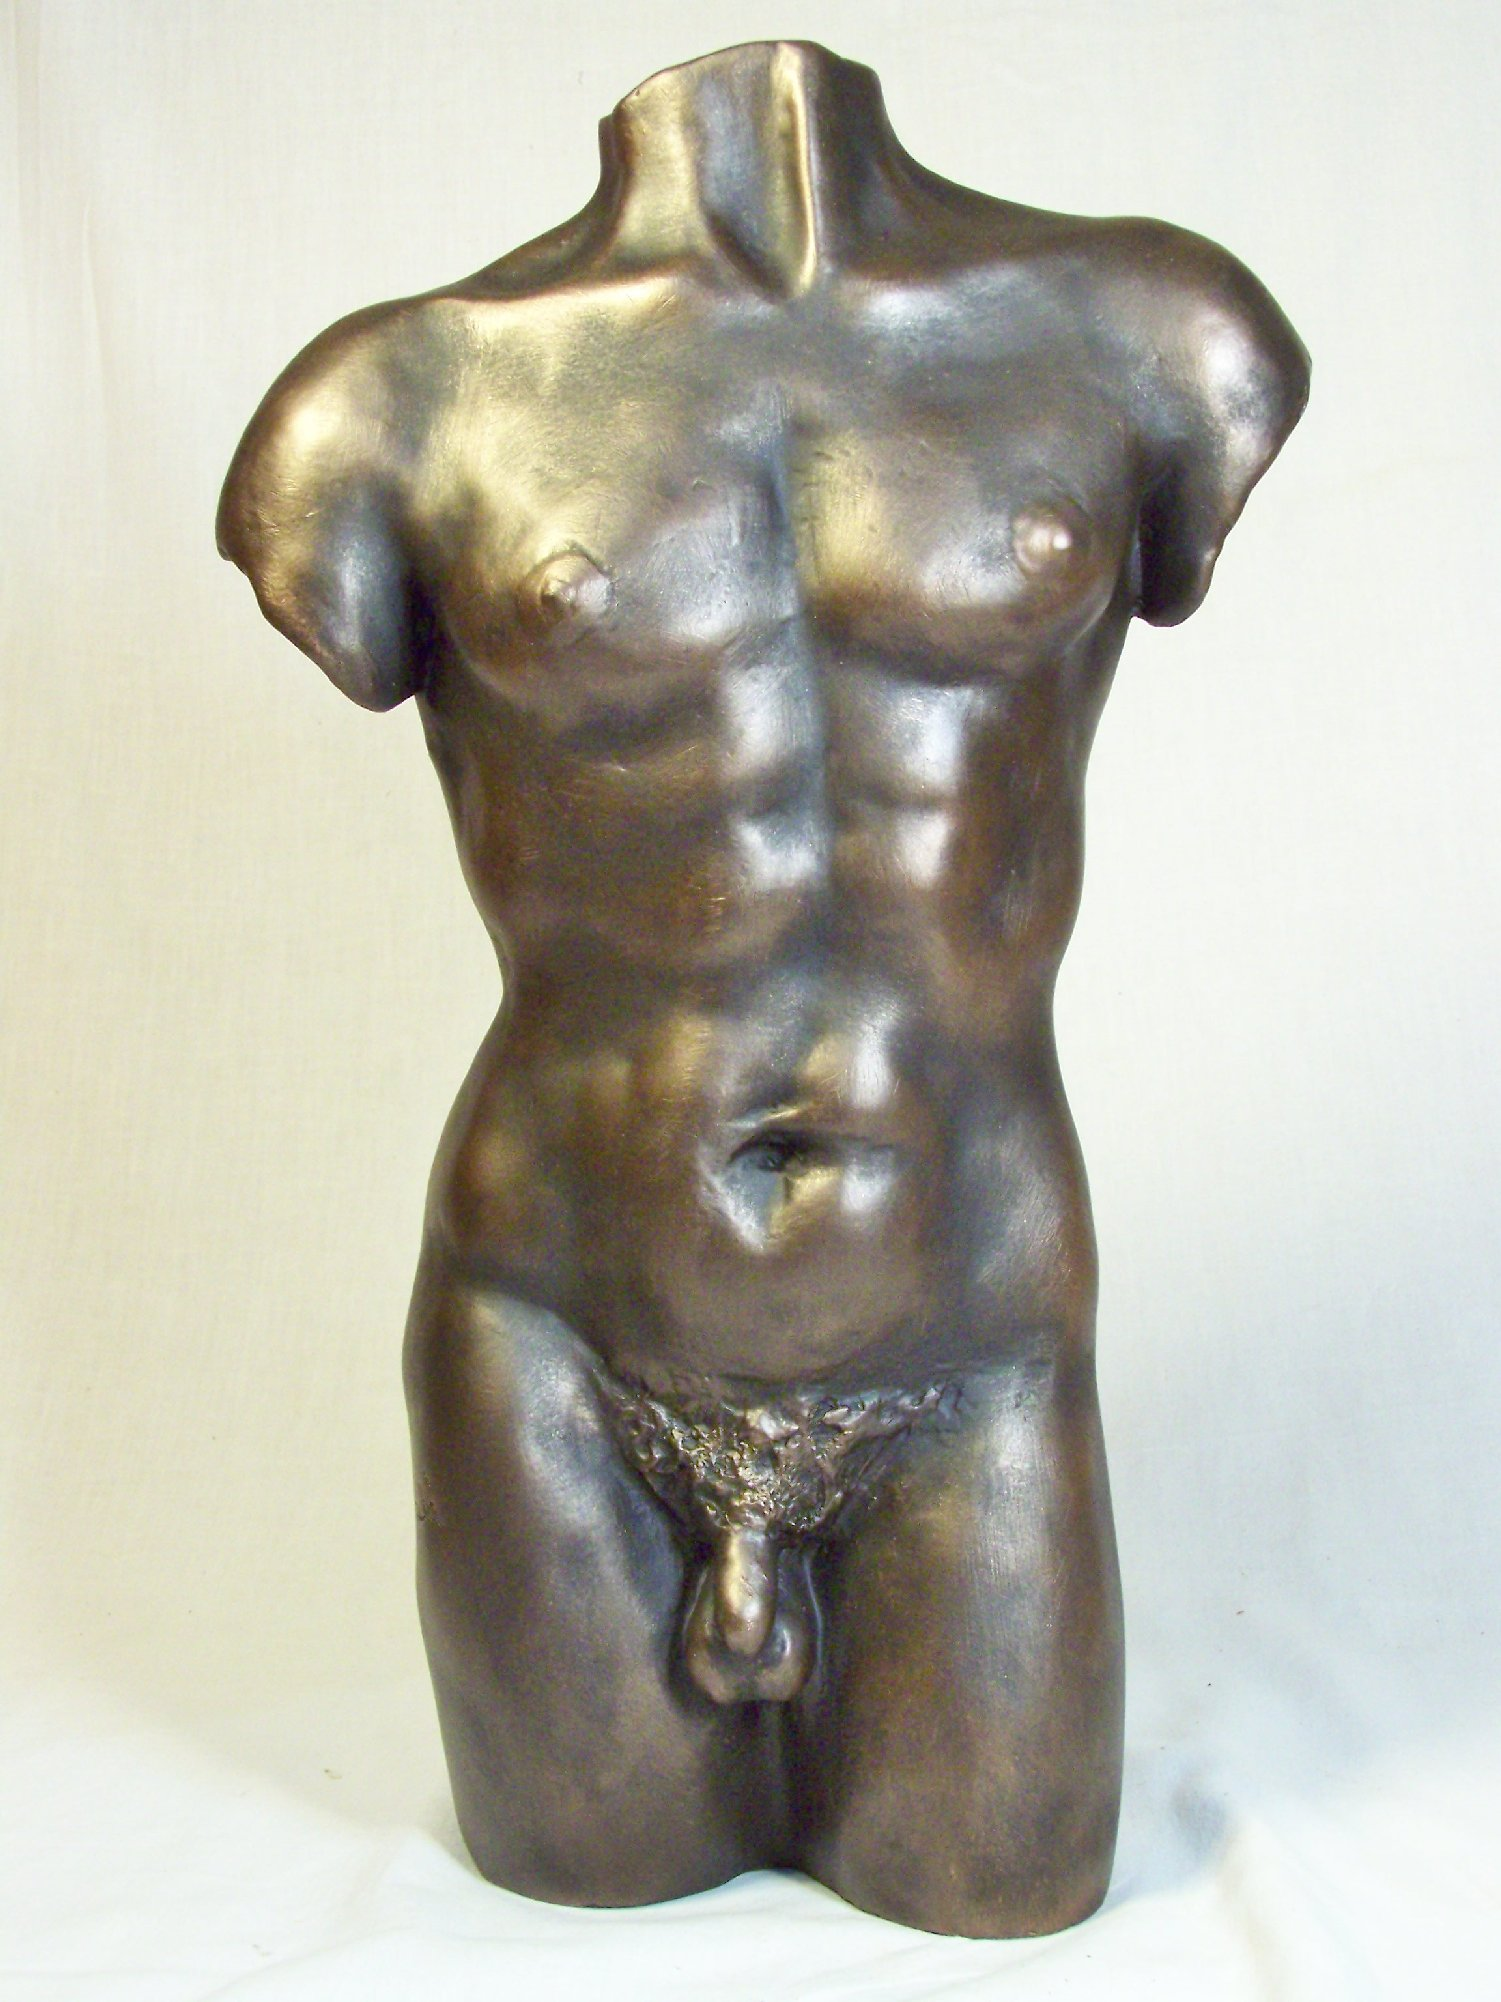 Sculpture of a man torso